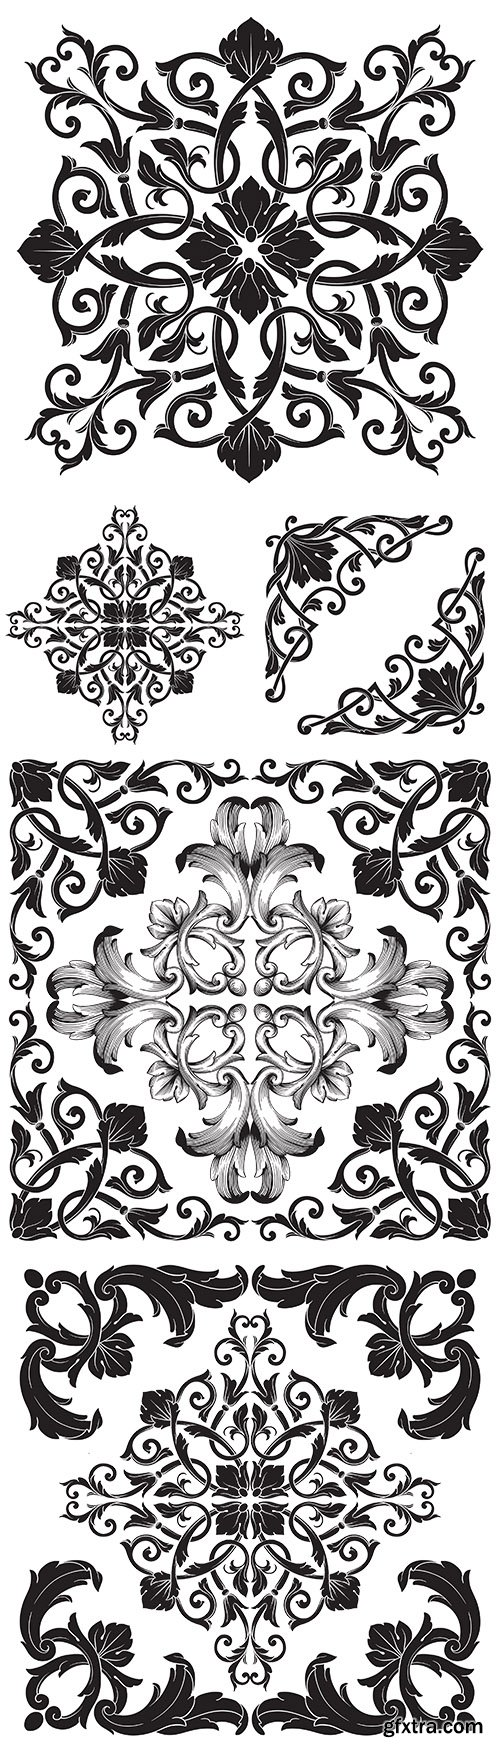 Damask decorative floral vintage pattern design illustrations